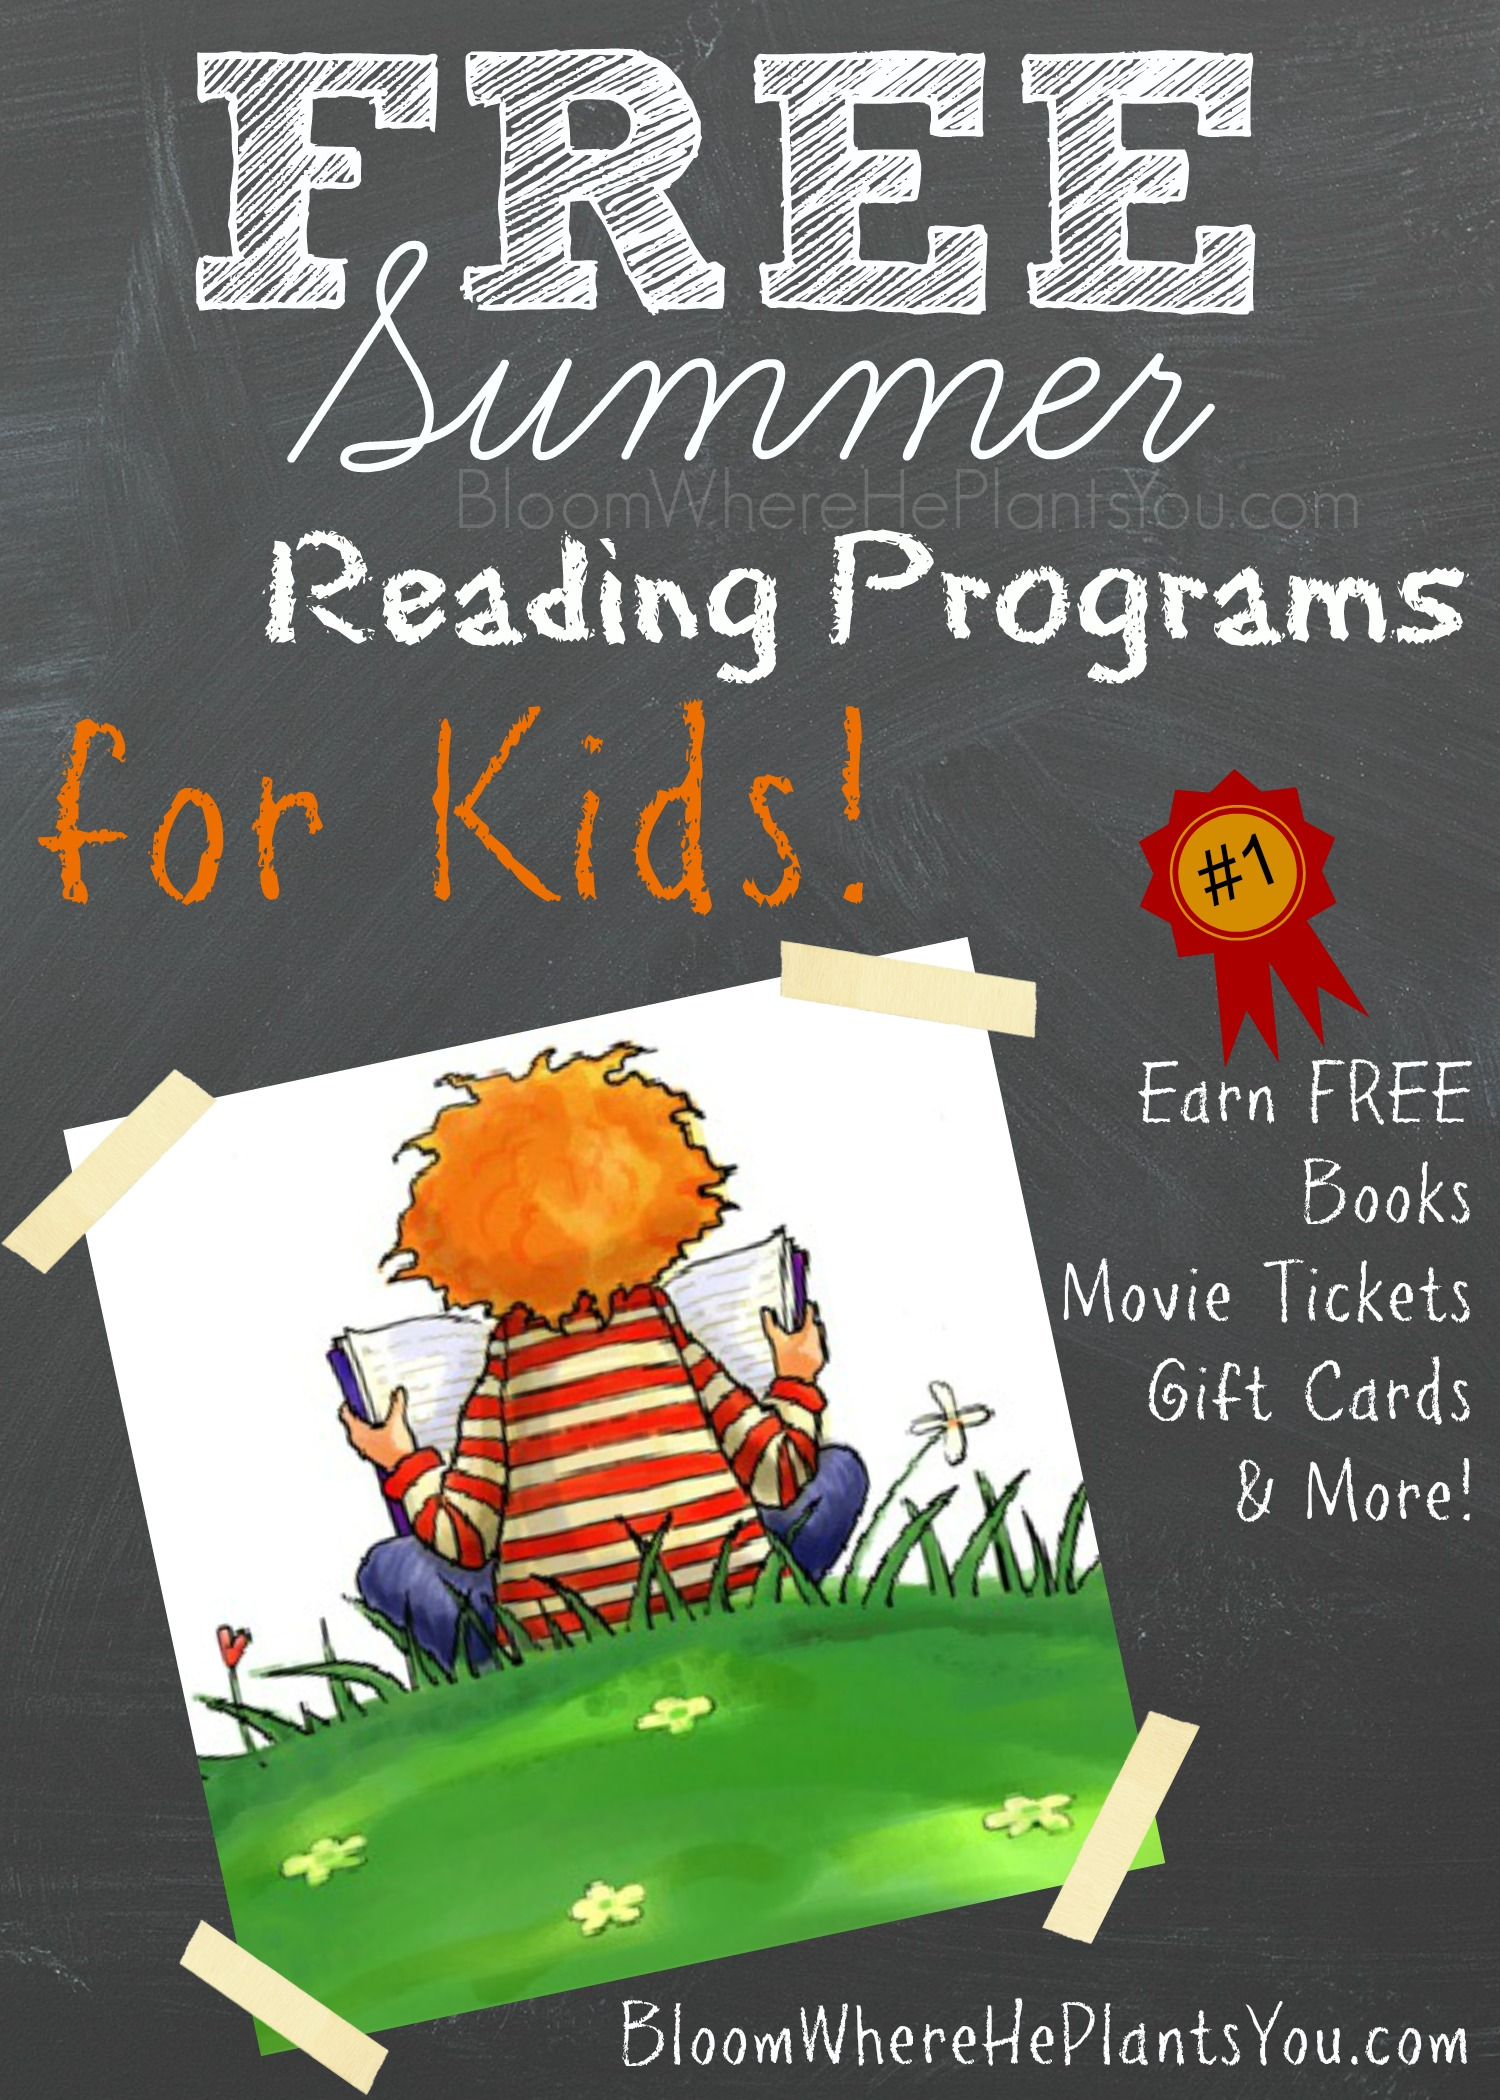 Worksheet Free Reading Programs free spring summer reading programs for kids kids